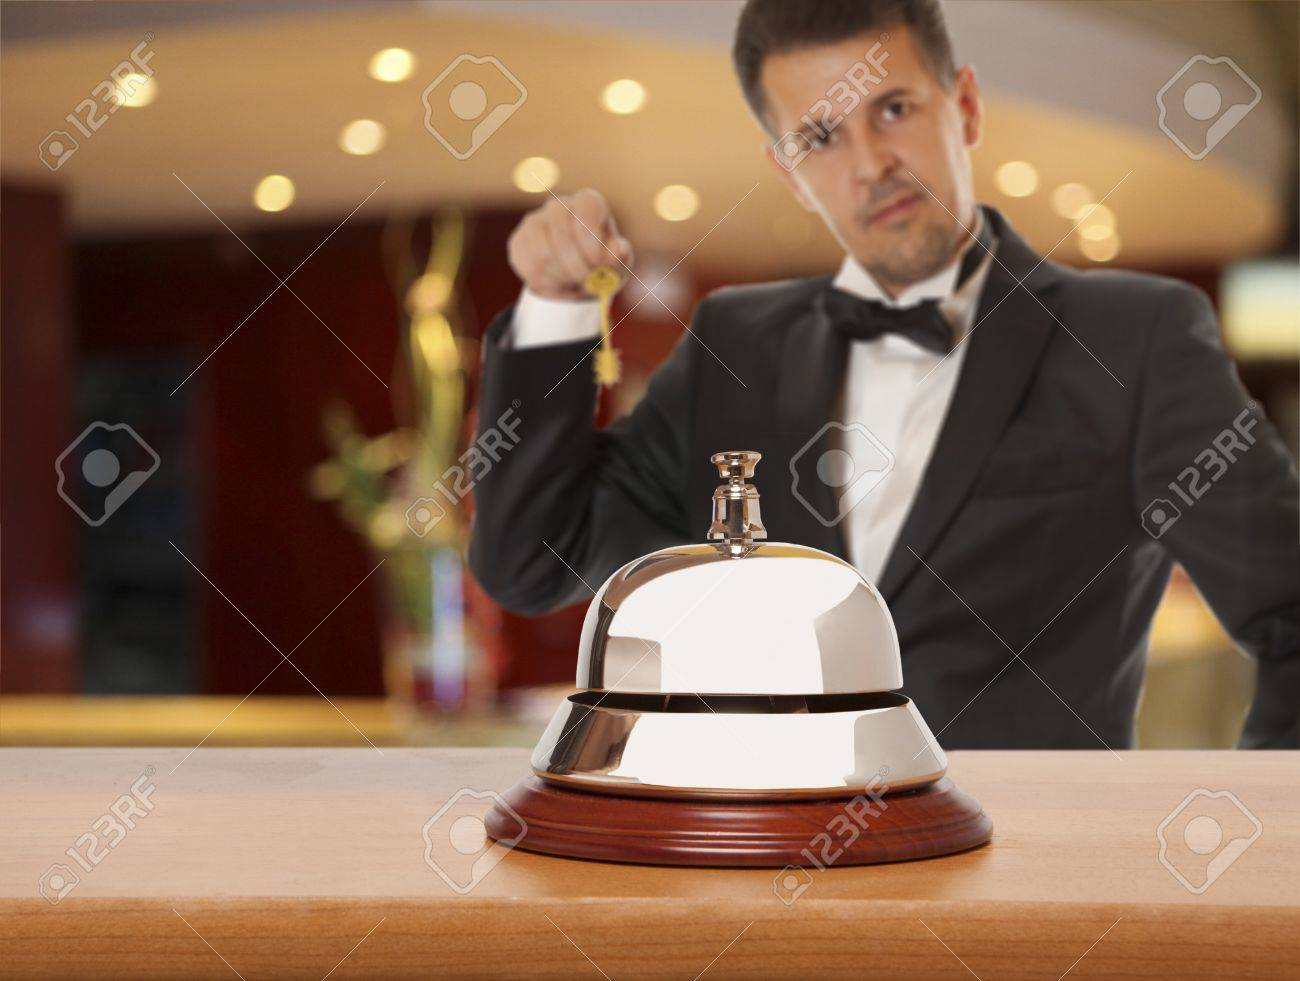 Hotel Concierge.  Service bell at the hotel Stock Photo - 15708357